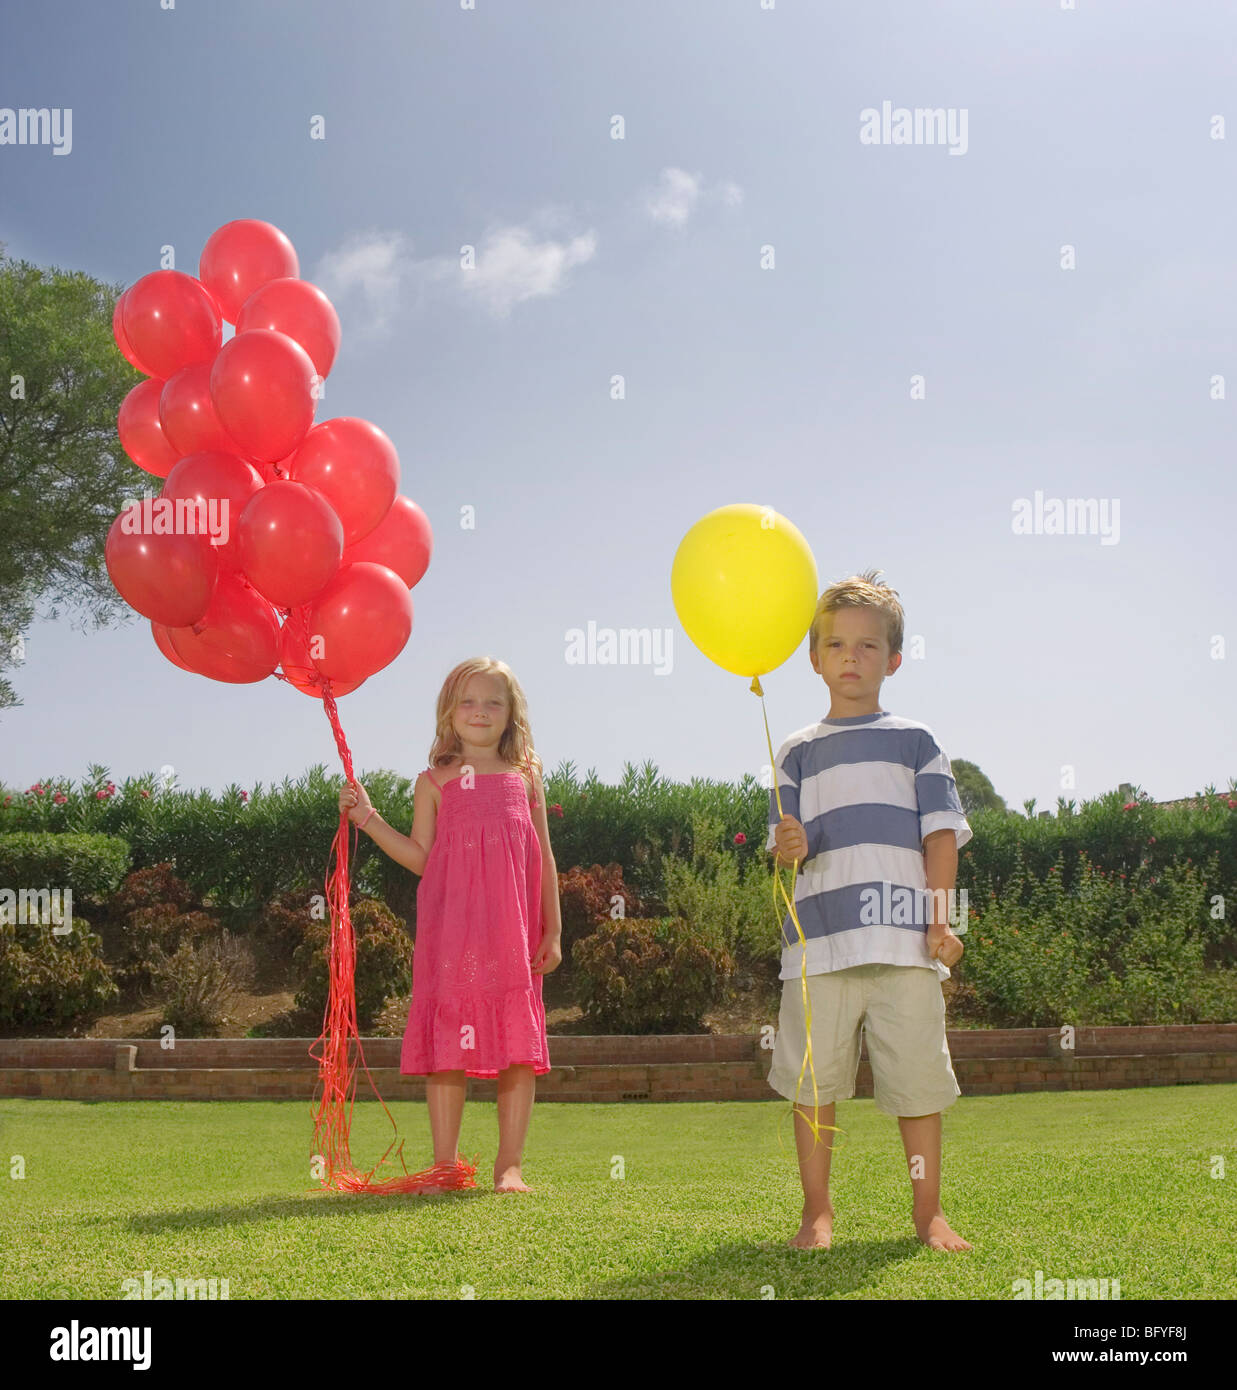 Young children holding red balloons - Stock Image